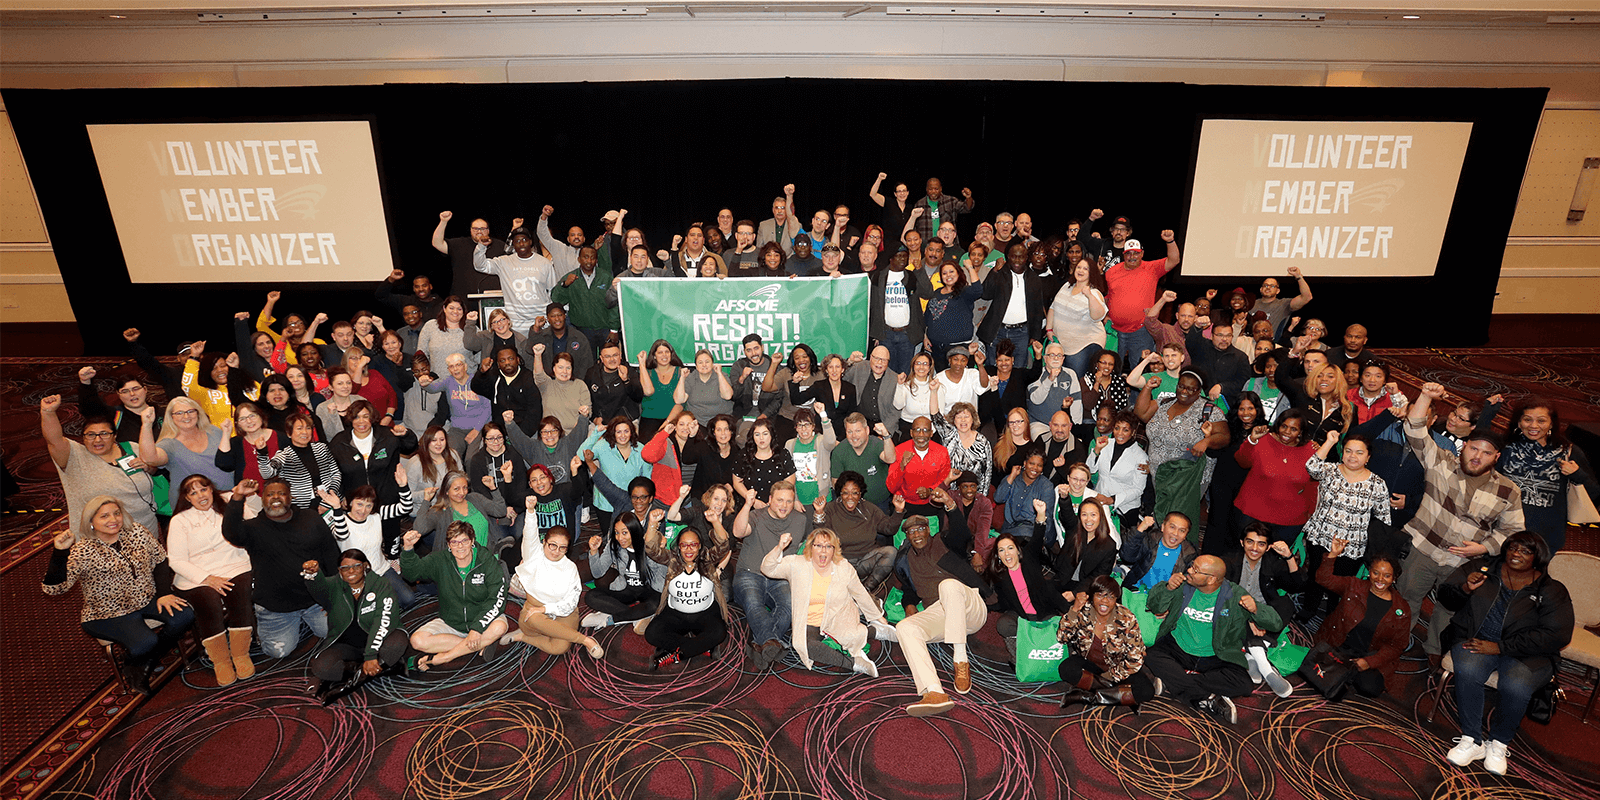 Group photo of AFSCME volunteer member organizers